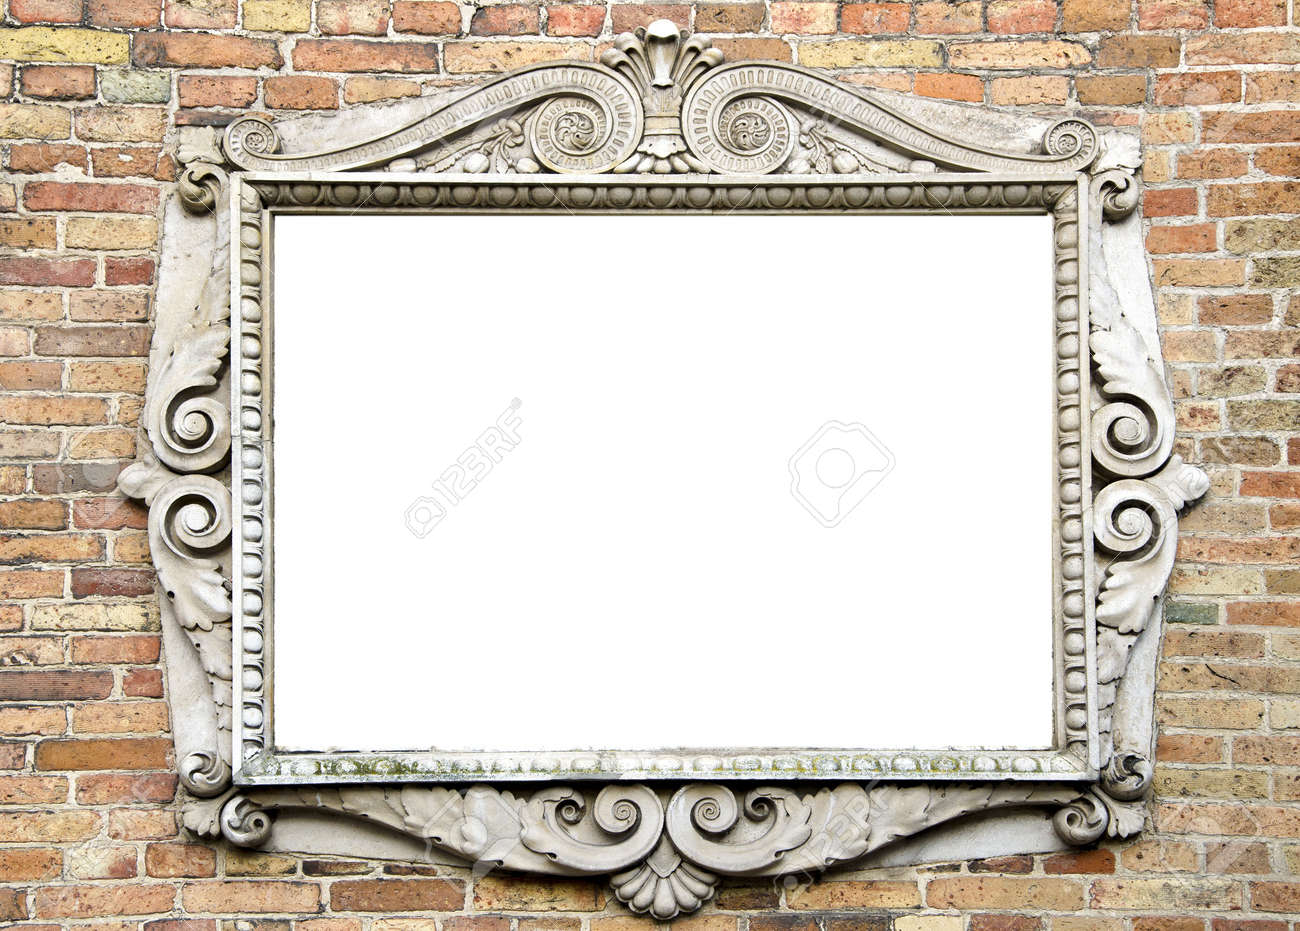 old wall with original vintage and epmty frame for text - 11818852